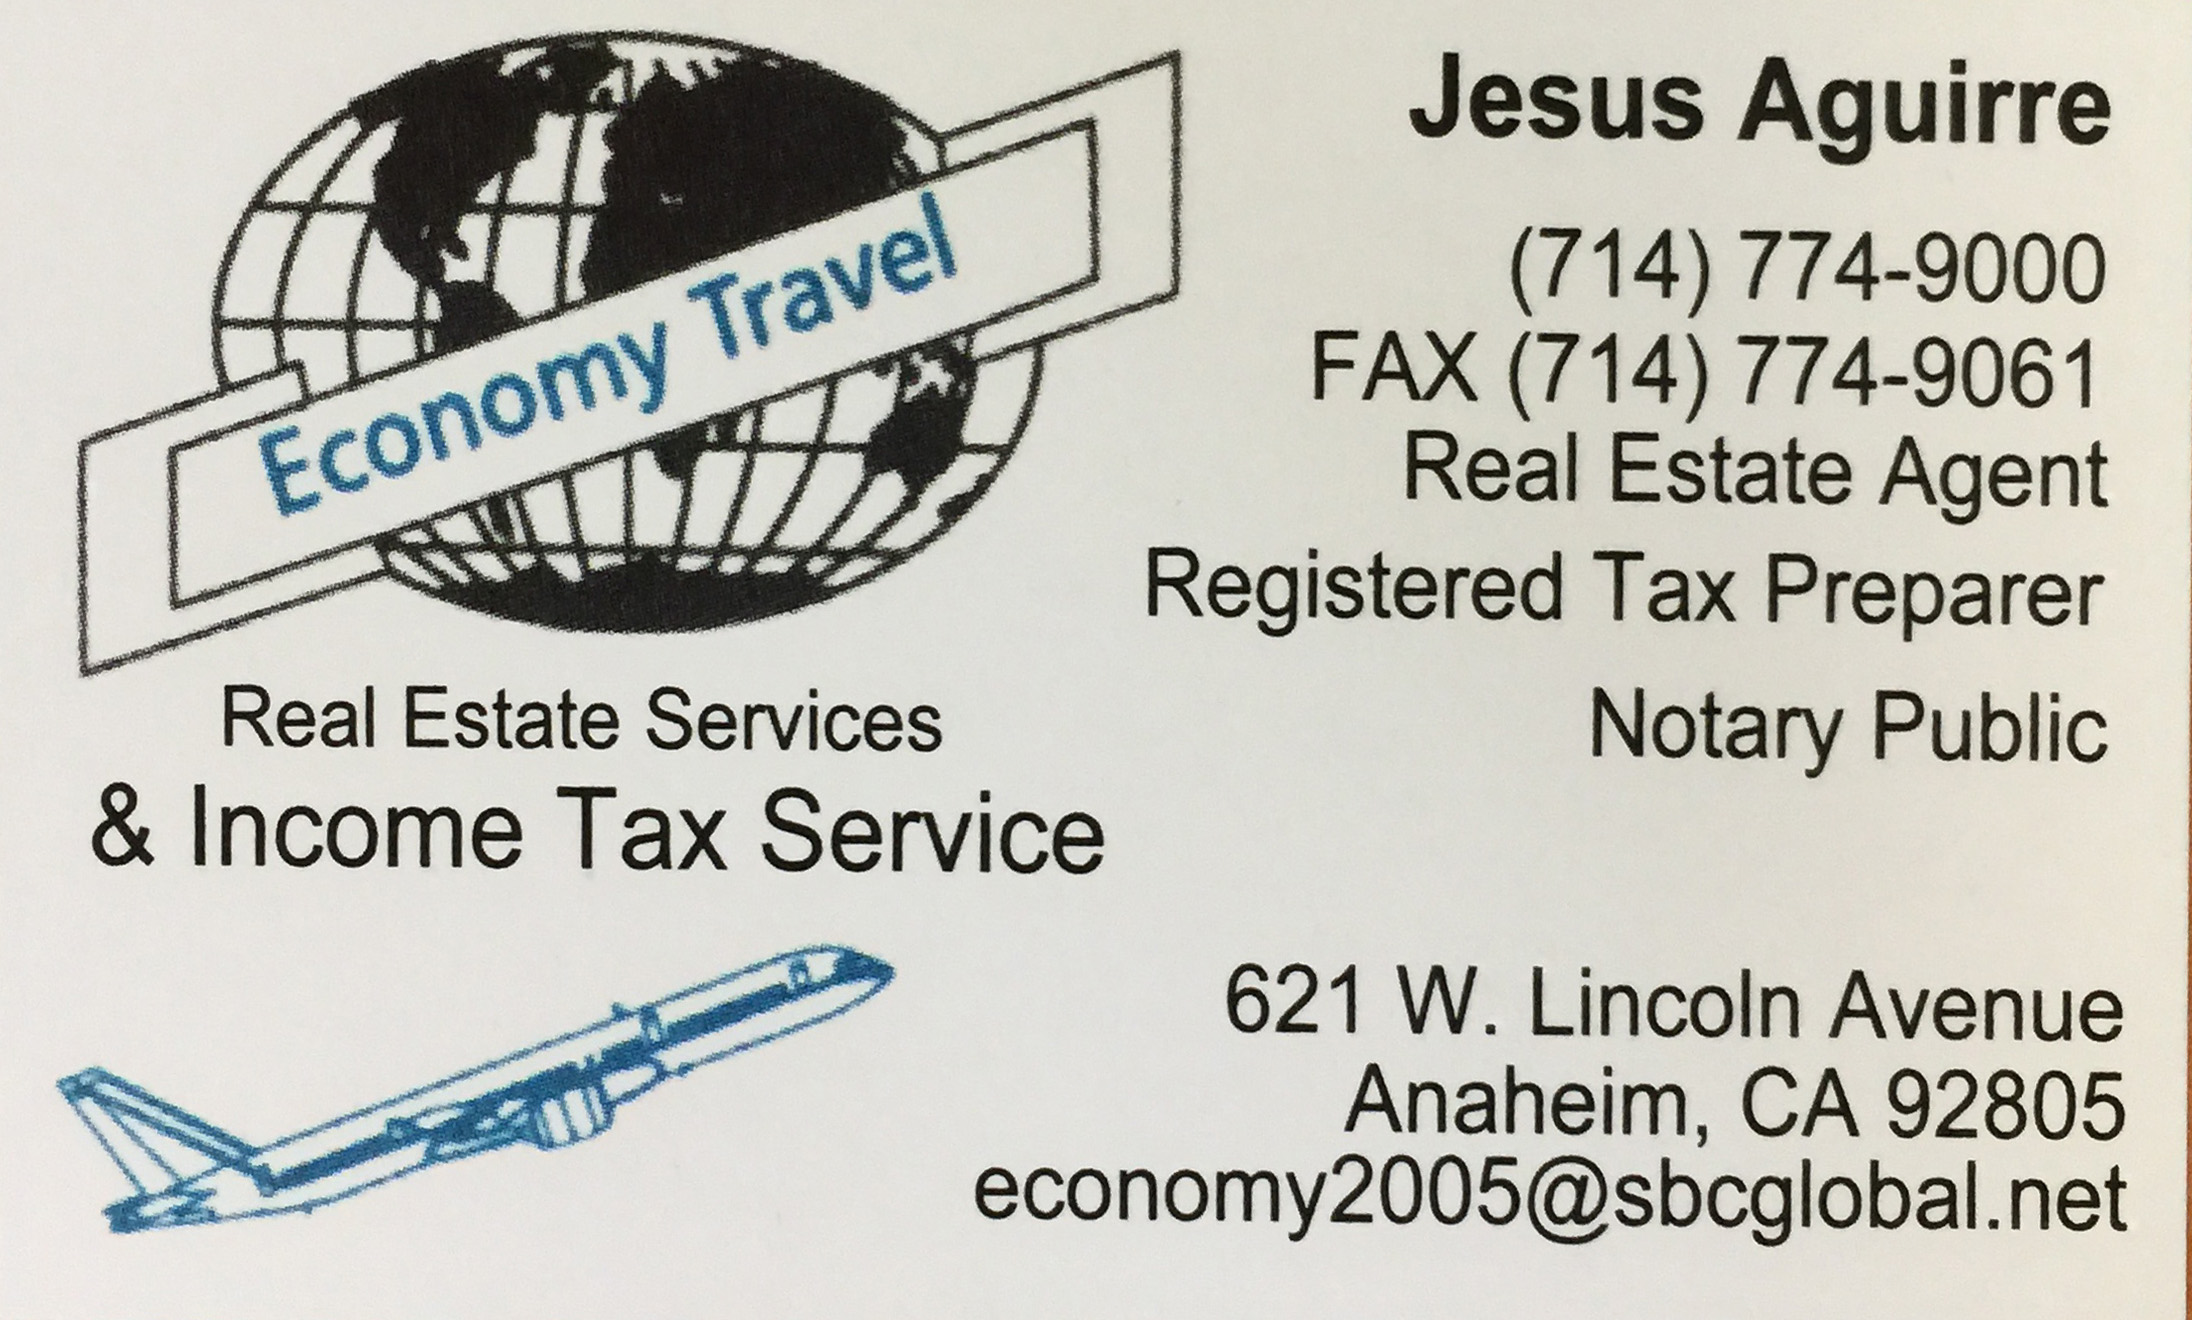 Real Estate Services & Income Tax Services